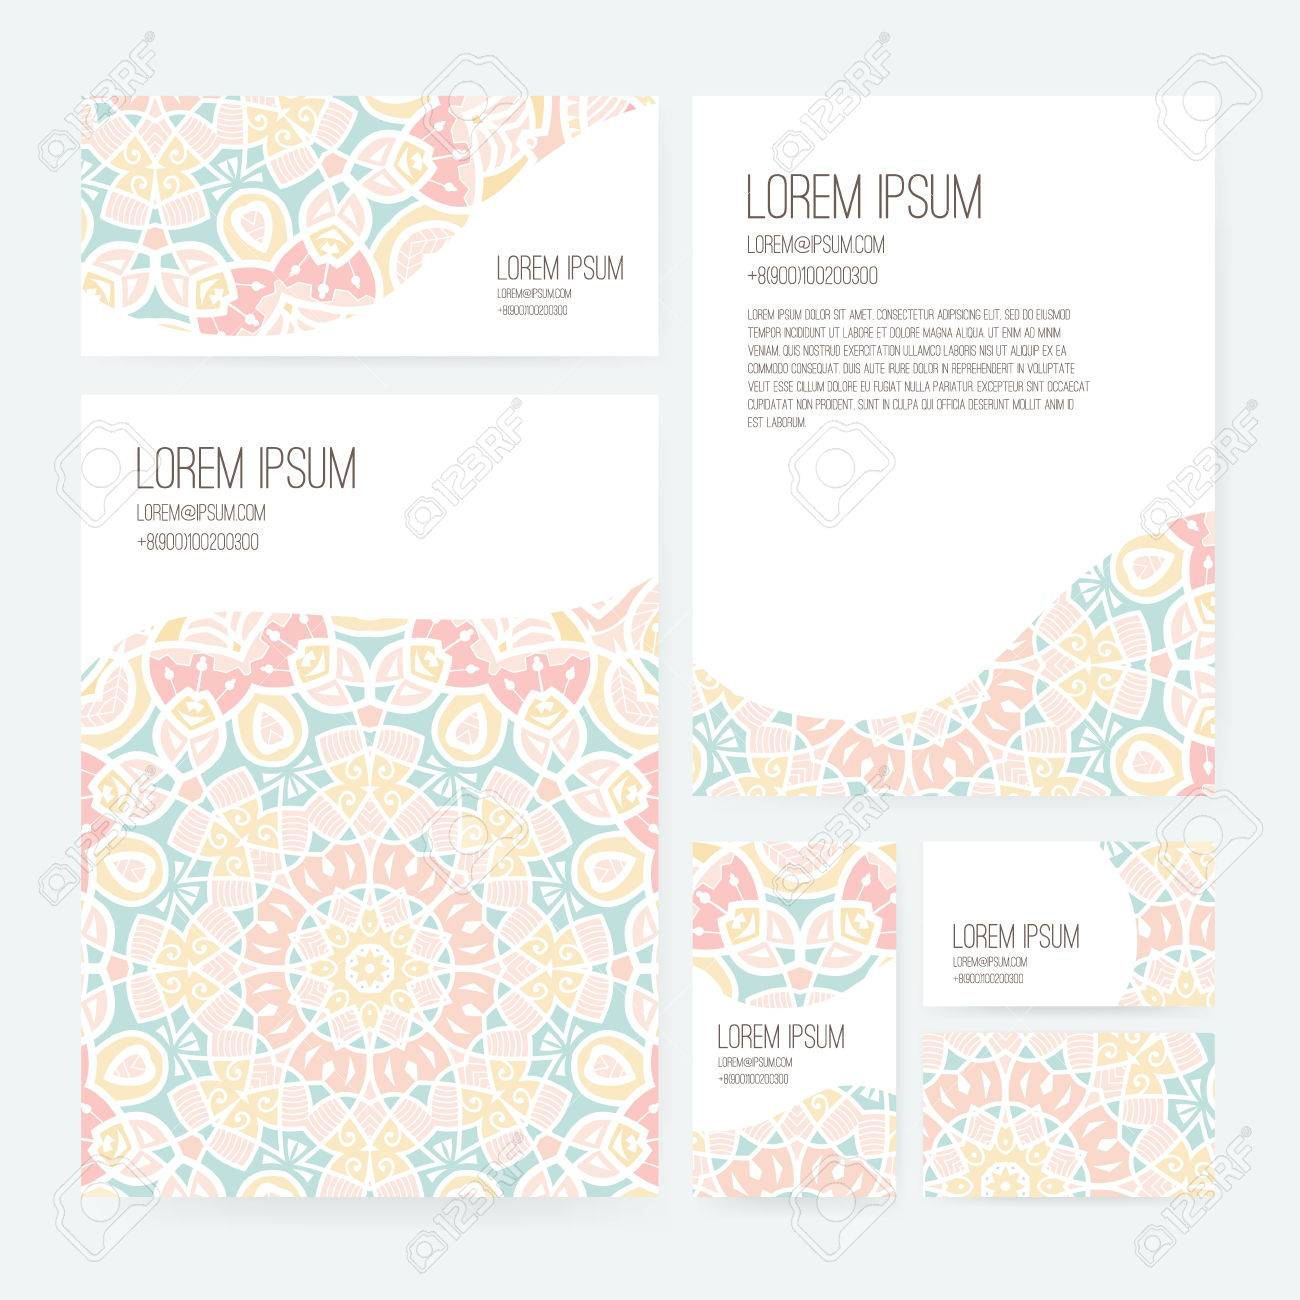 Set Of Business Card And Invitation Card Templates With Lace Ornament Vector Background Indian Arabic Islam Motifs Vintage Design Elements